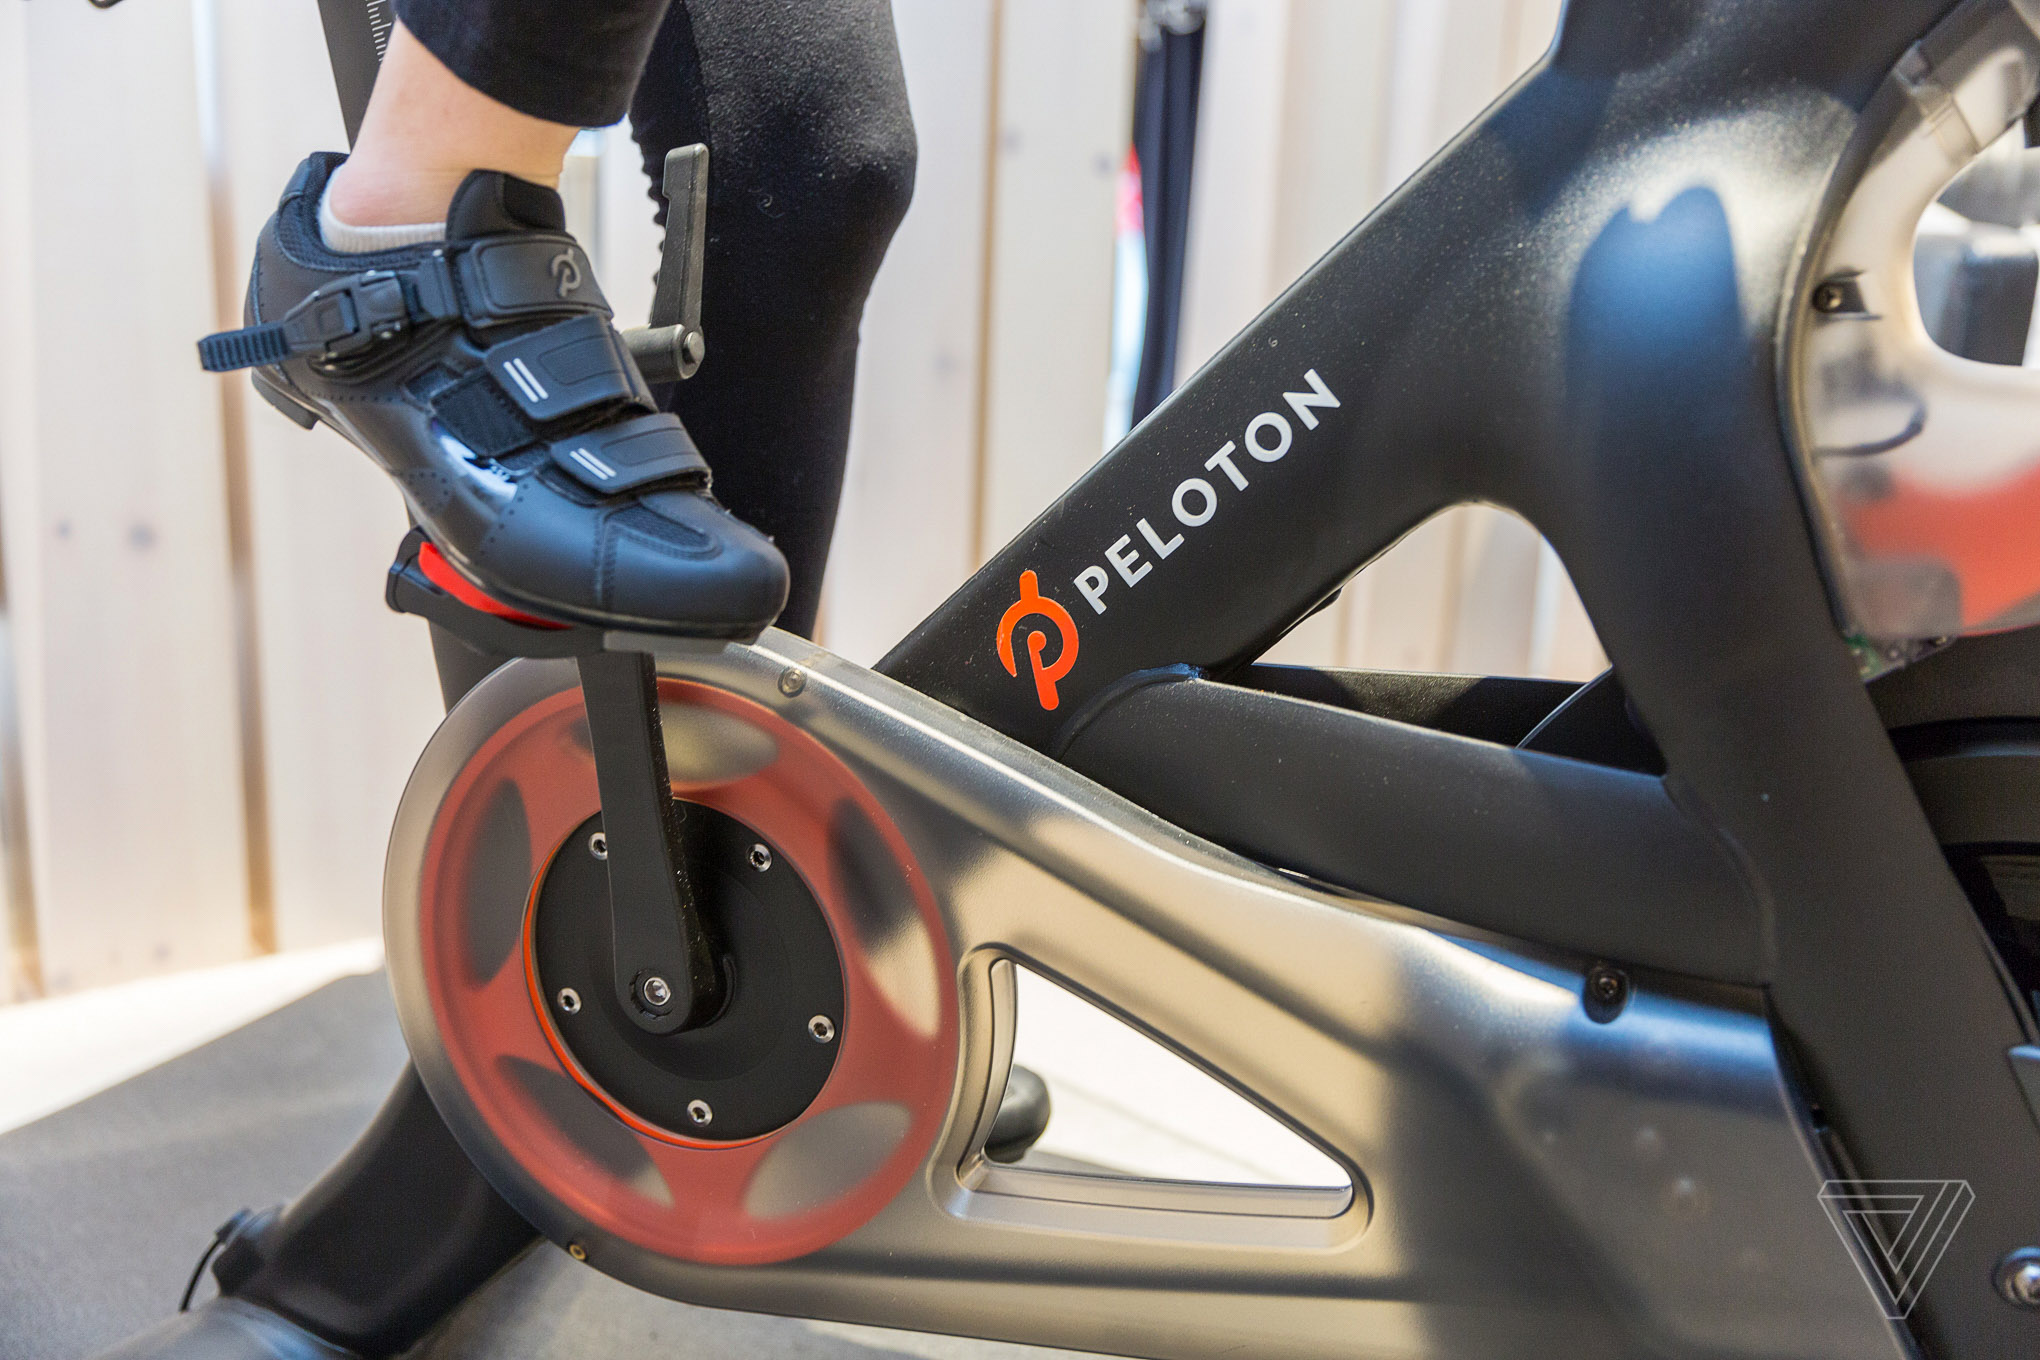 My two-month ride with Peloton, the cultish, internet